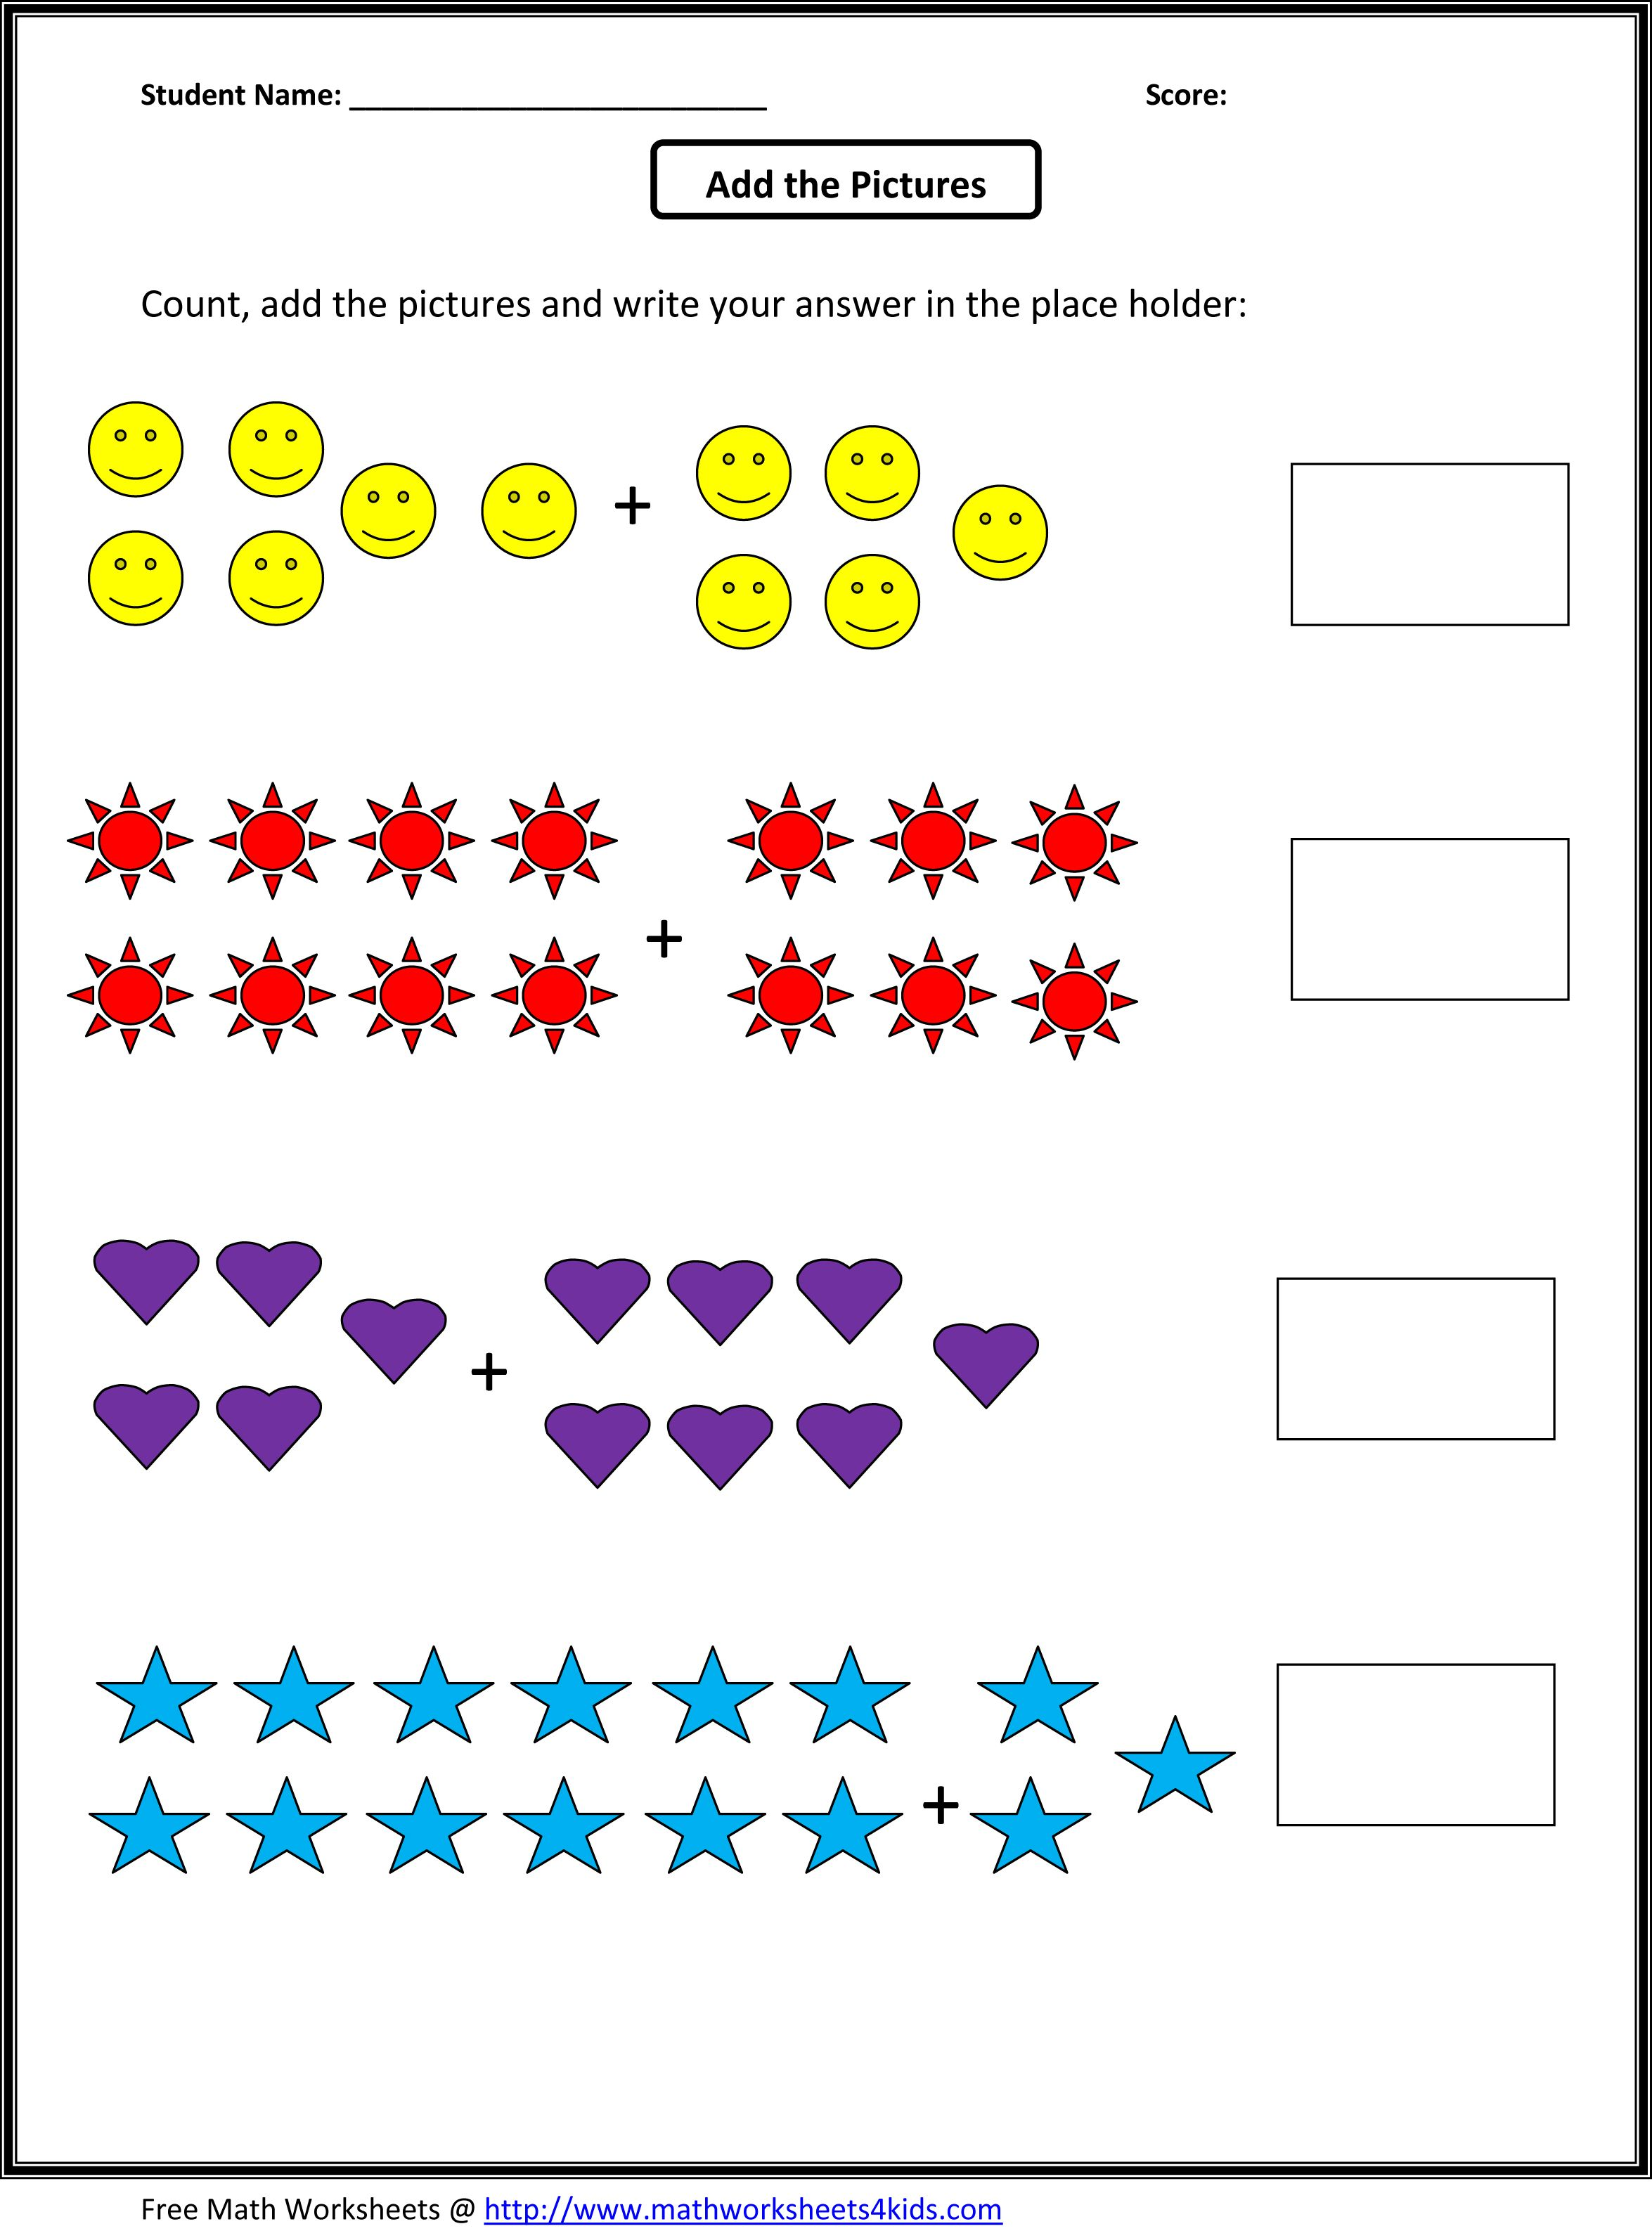 Worksheets Picture Math Worksheets grade 1 addition math worksheets first worksheets